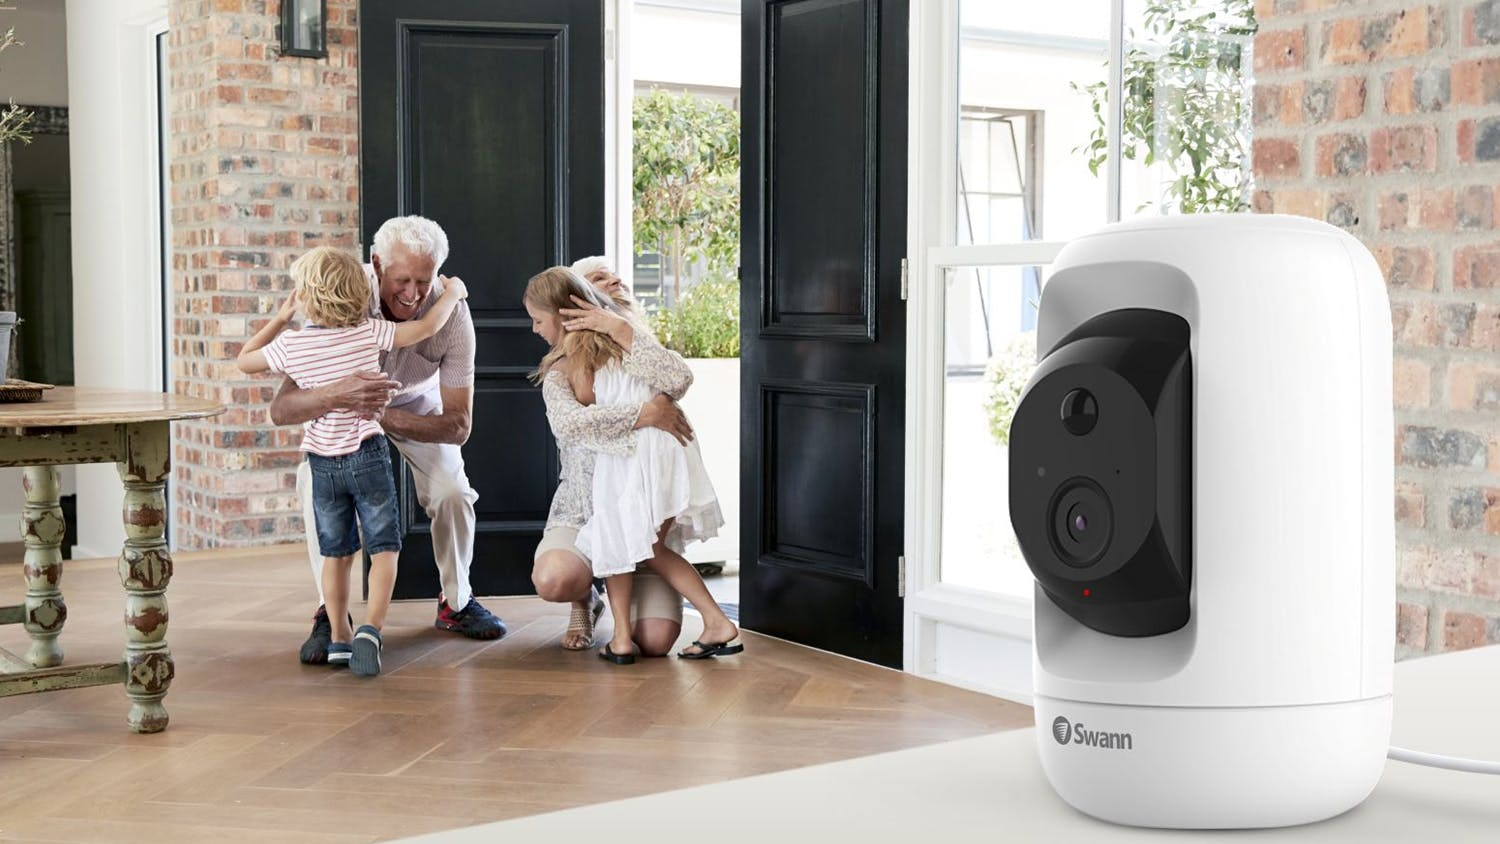 Swann 1080p WiFi Pan & Tilt Indoor Security Camera - White